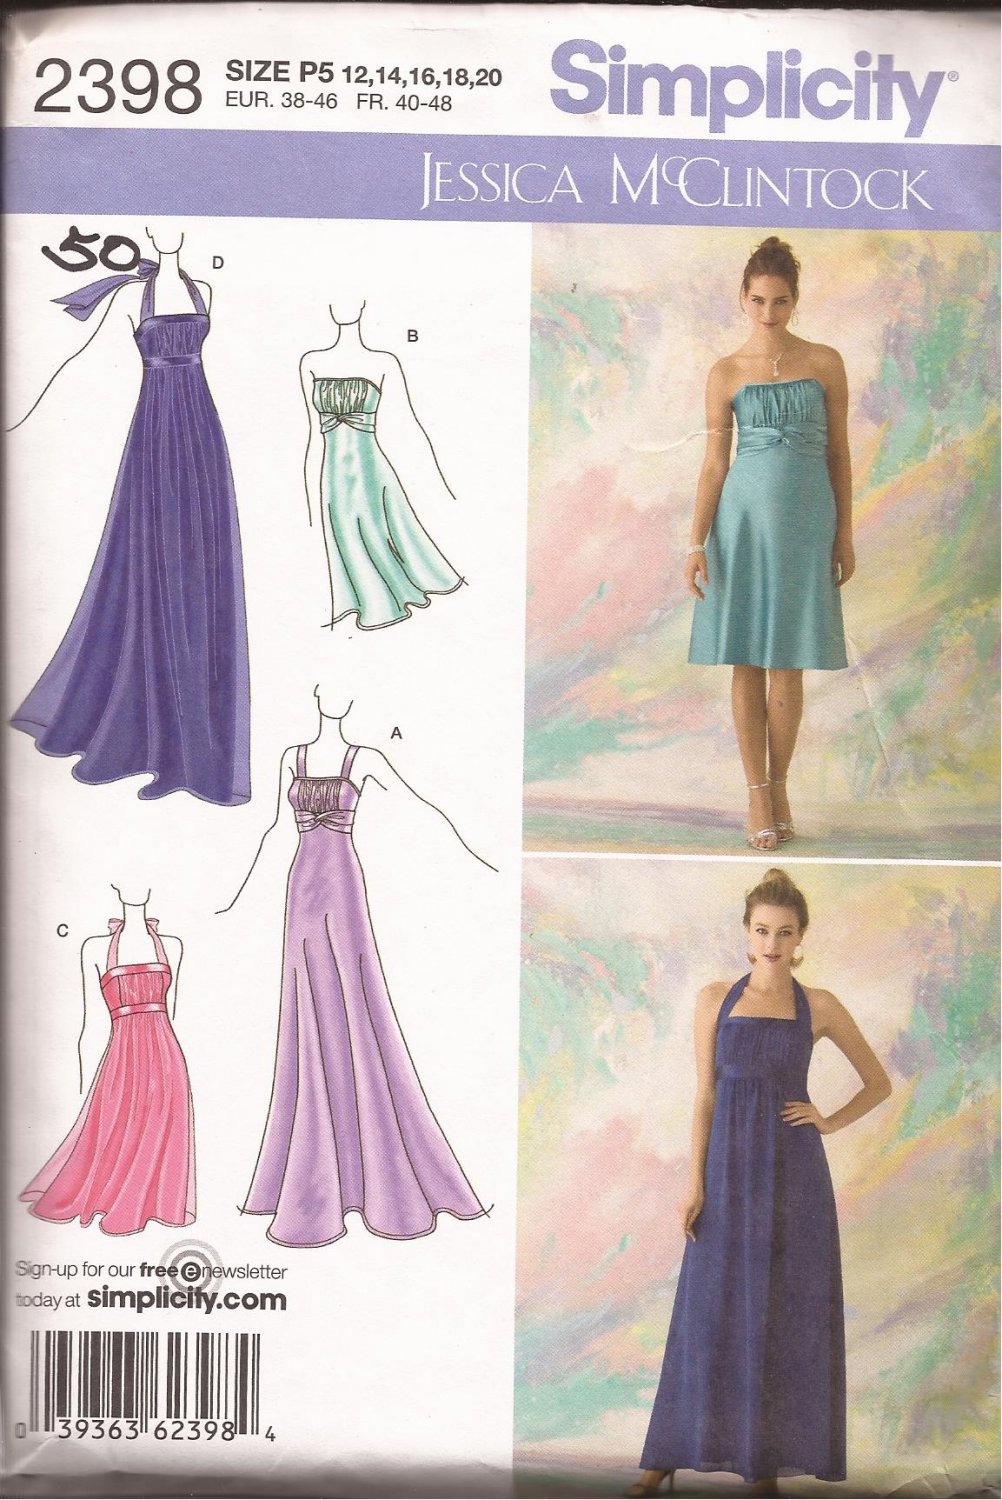 Simplicity 2398 (2010) Special Occassion Evening Prom Dress Pattern Size 12 14 16 18 20 CUT